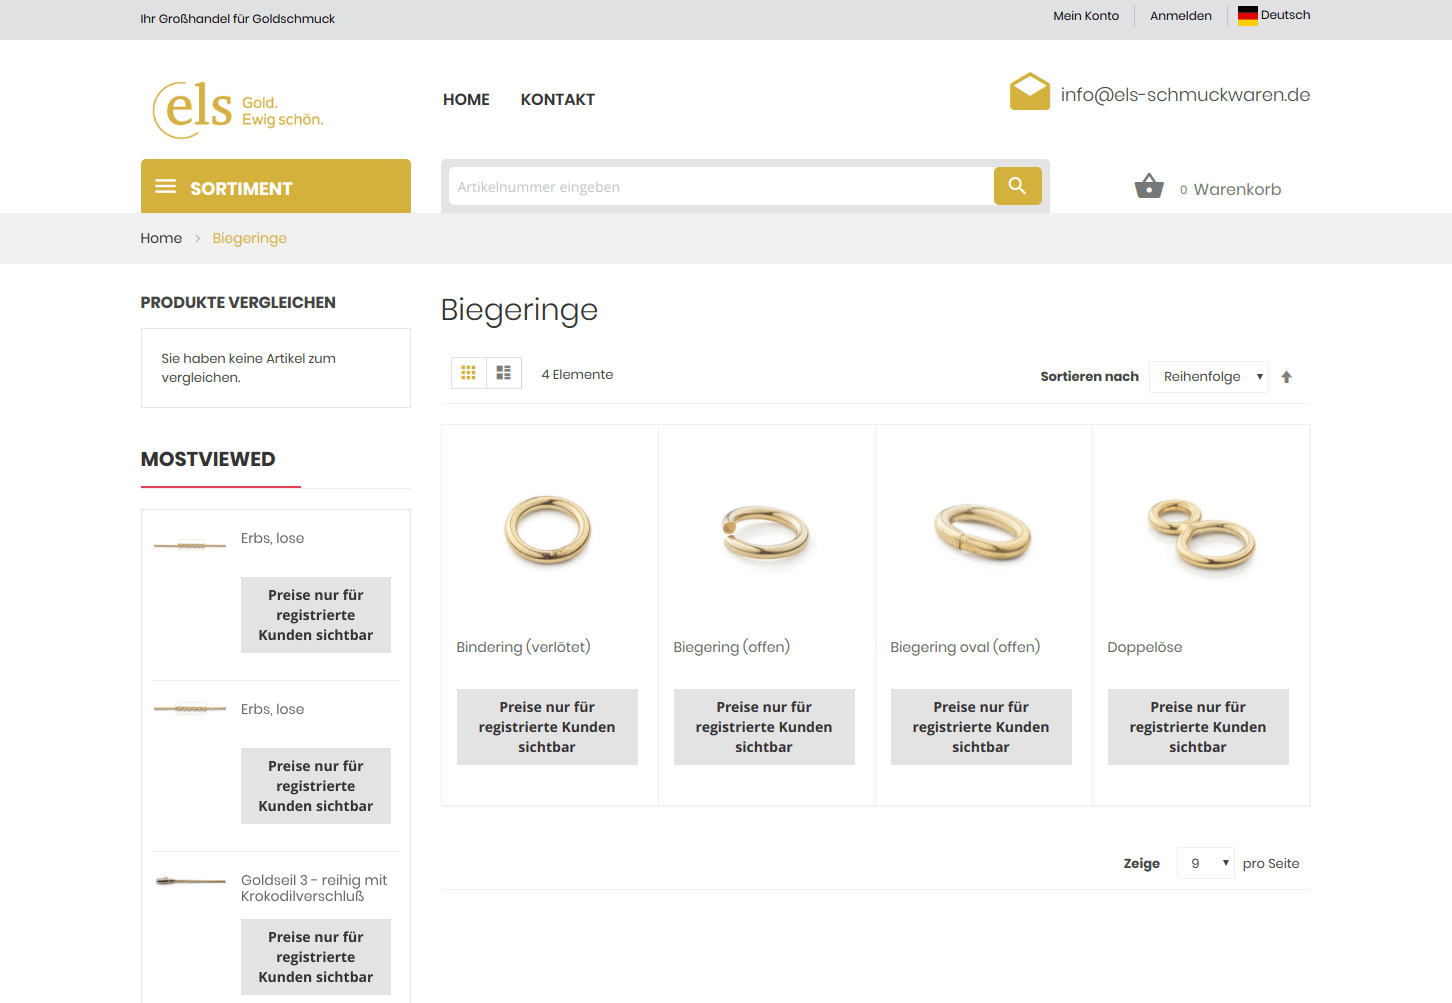 German-Austian Magento Online Shop of Luxury Goods and Jewelry